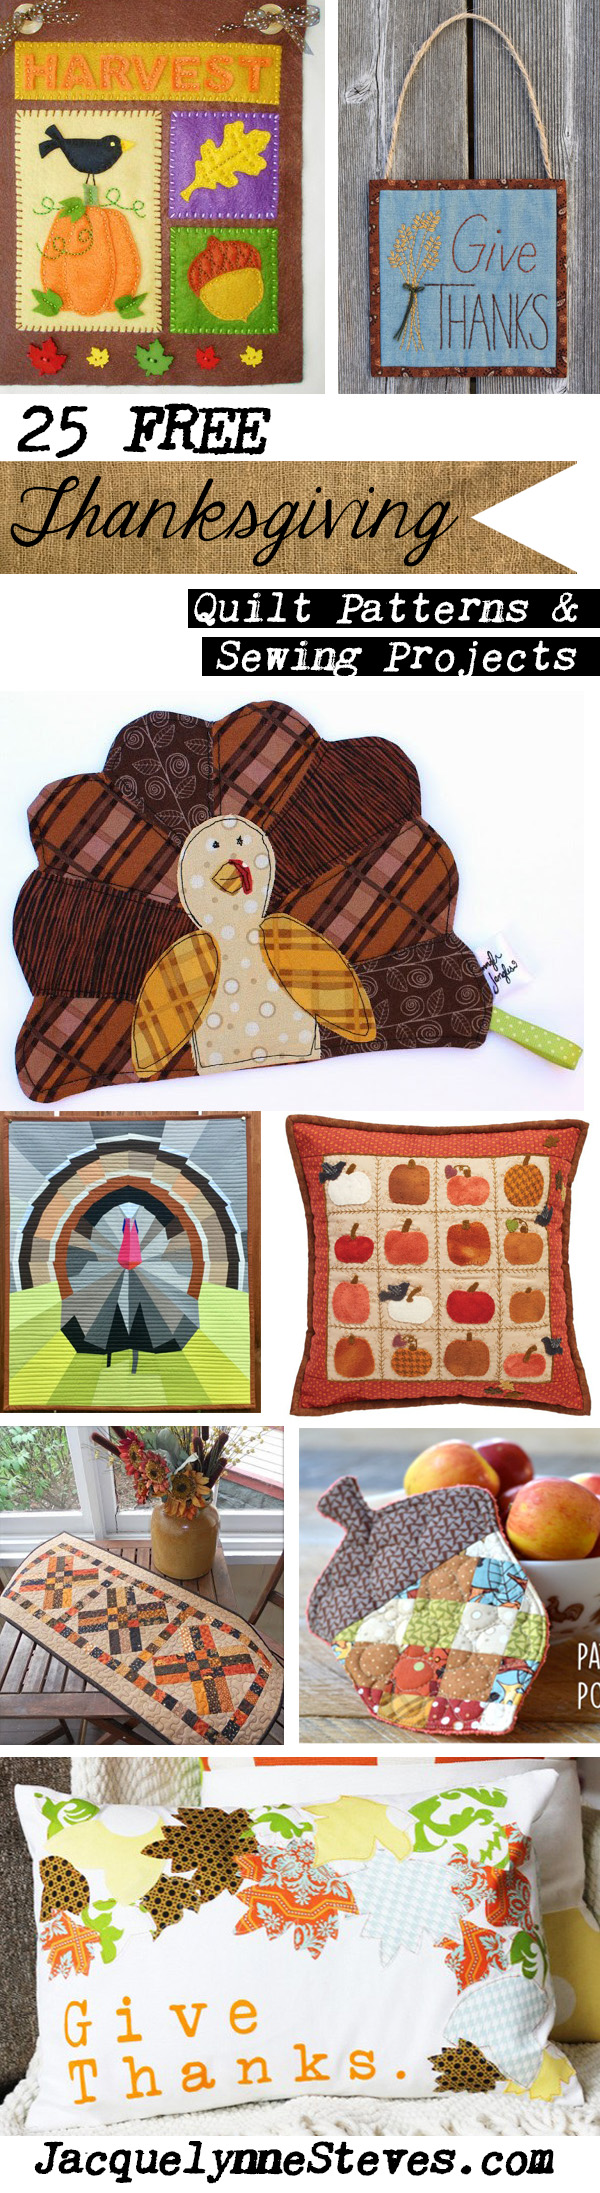 25 Free Thanksgiving Quilt Patterns & Sewing Projects